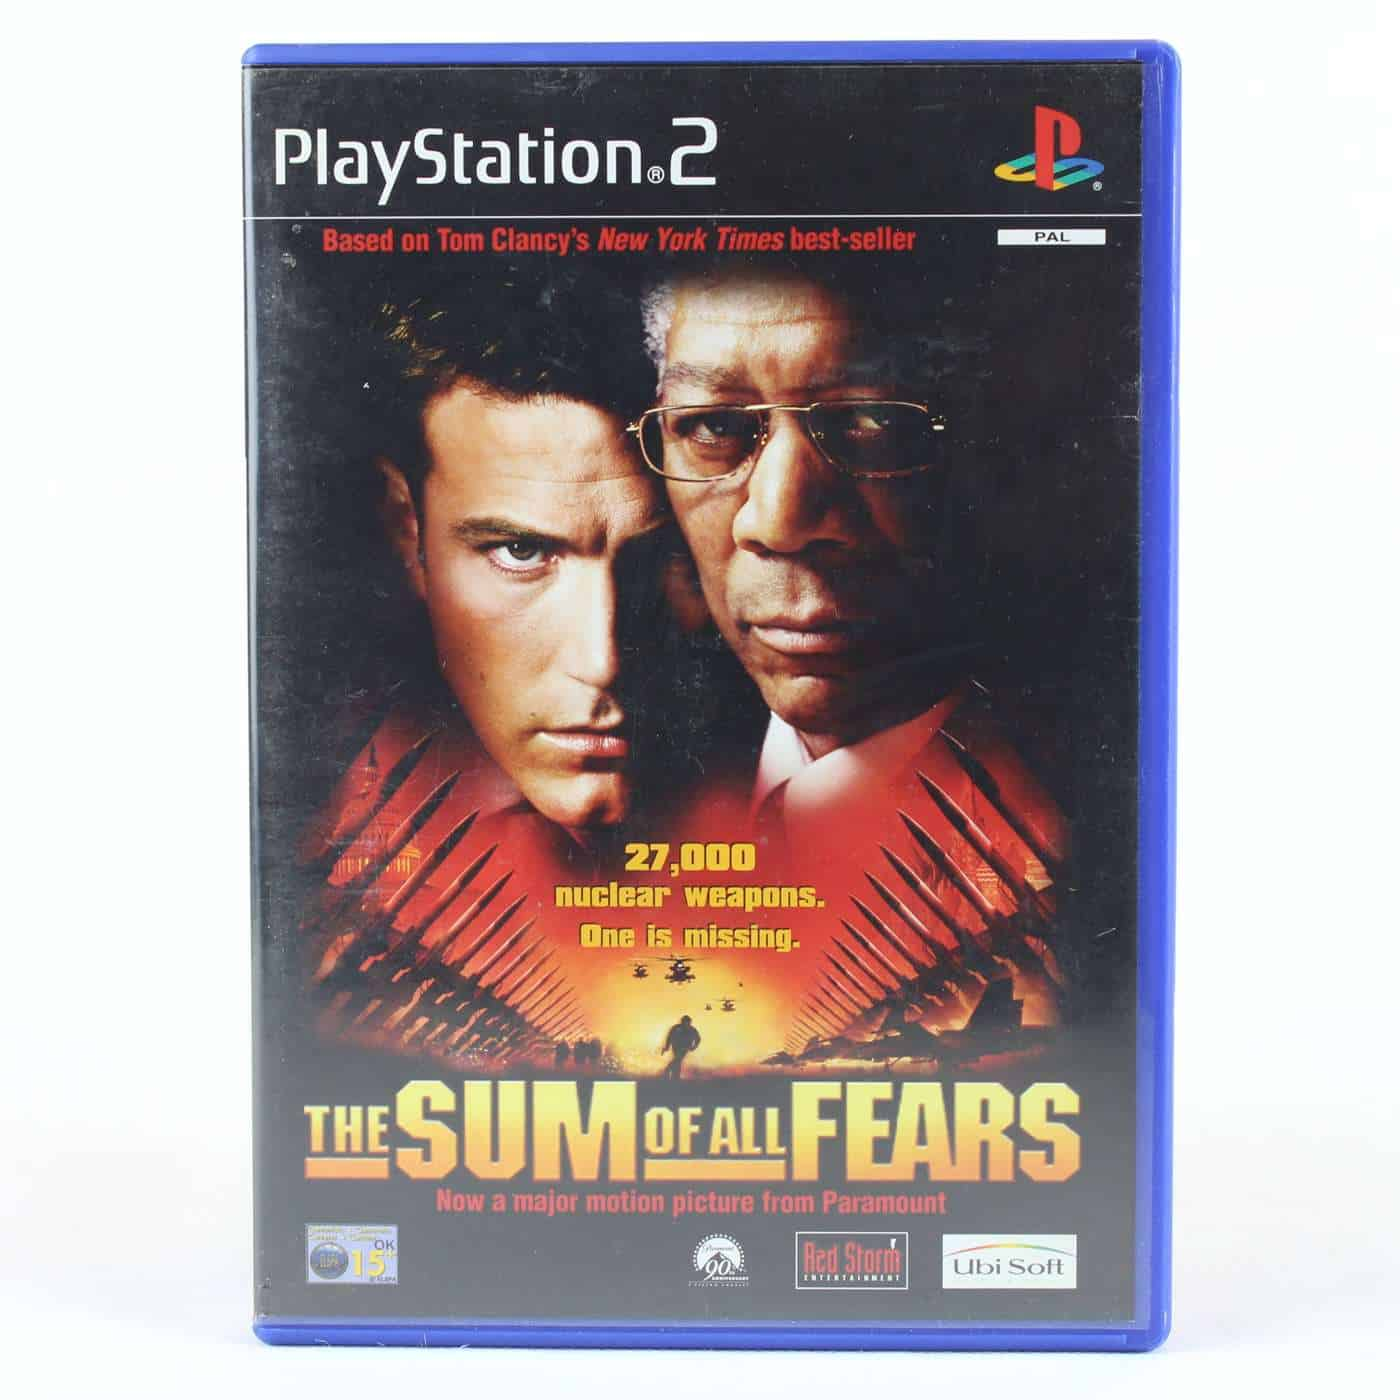 The Sum of All Fears (Playstation 2)